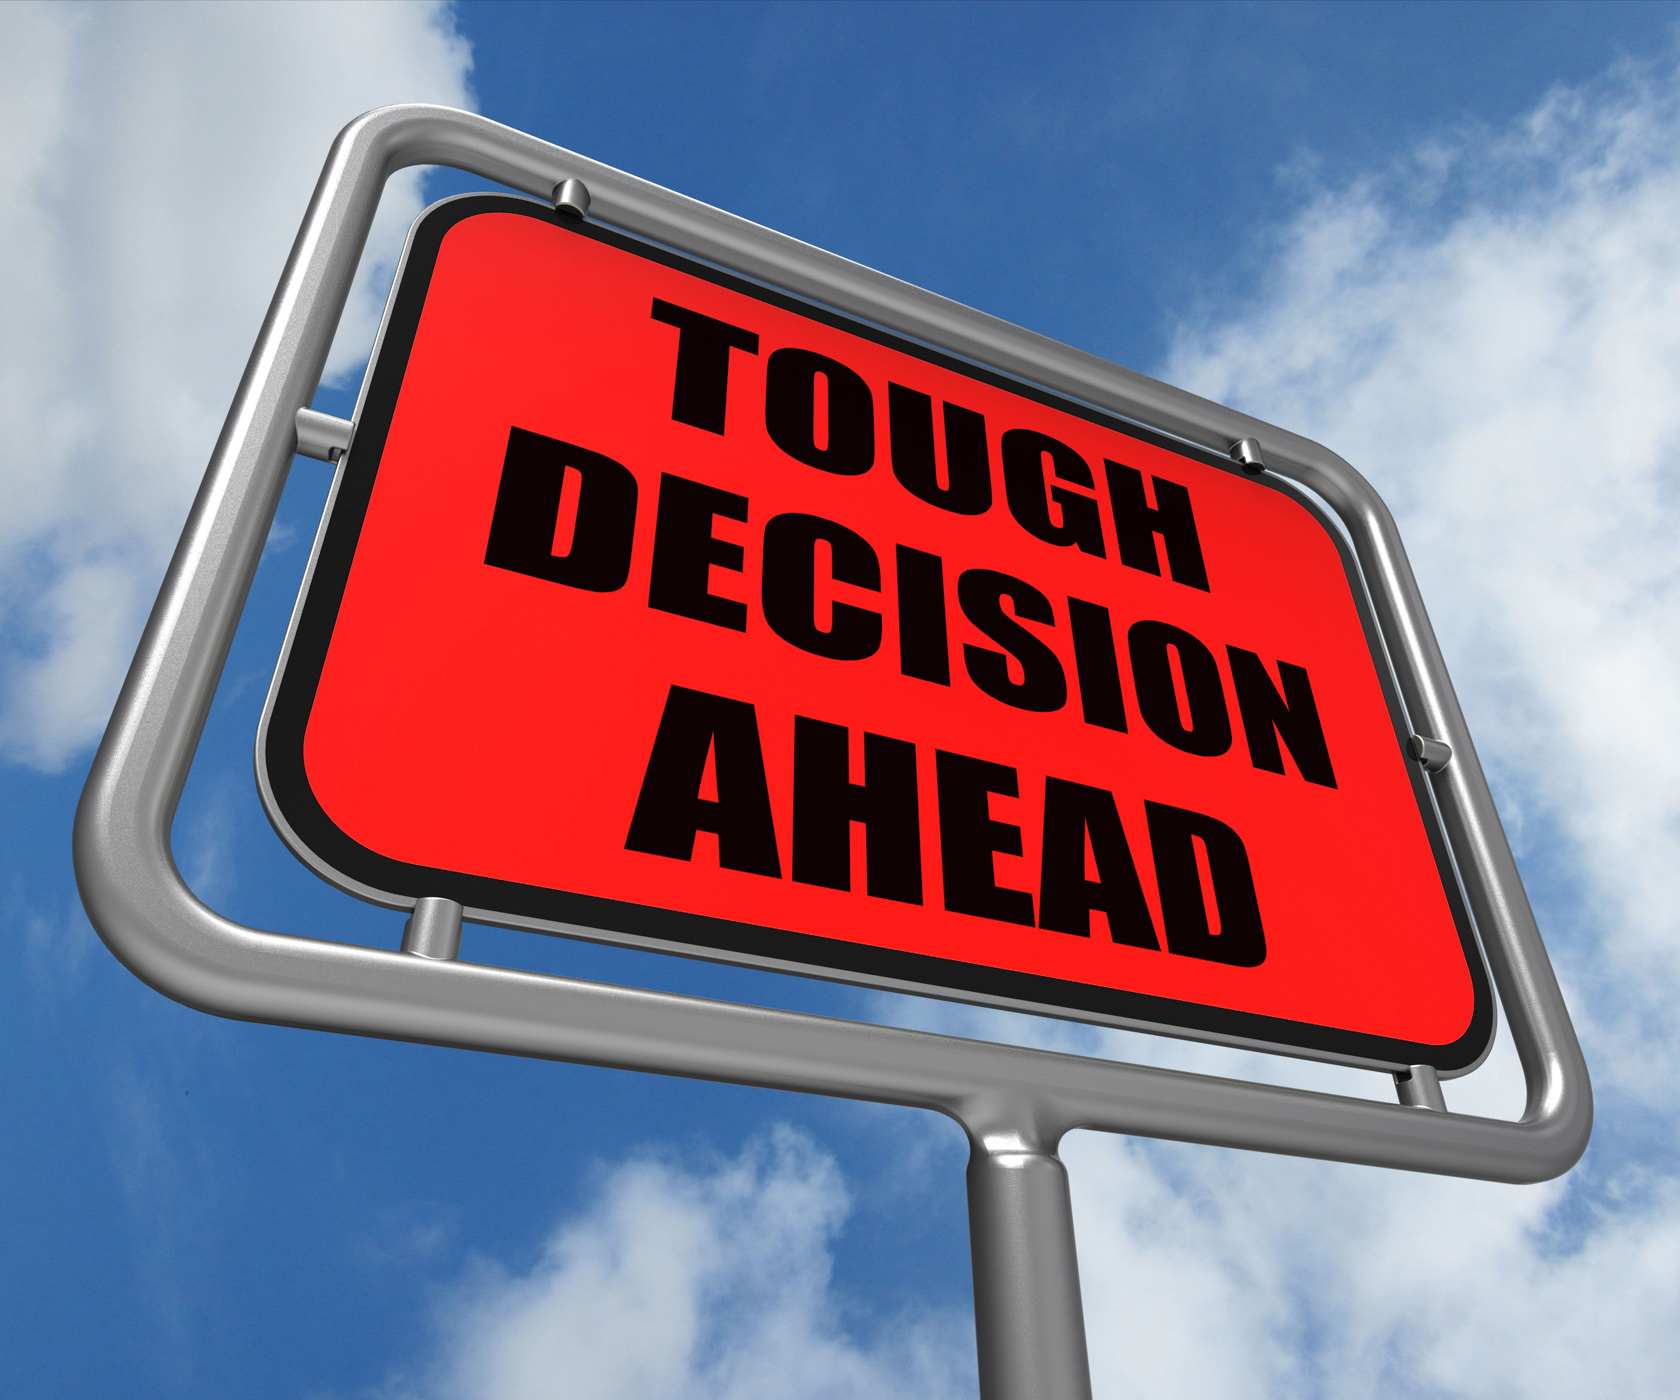 Tough decision ahead sign means uncertainty and difficult choice photo